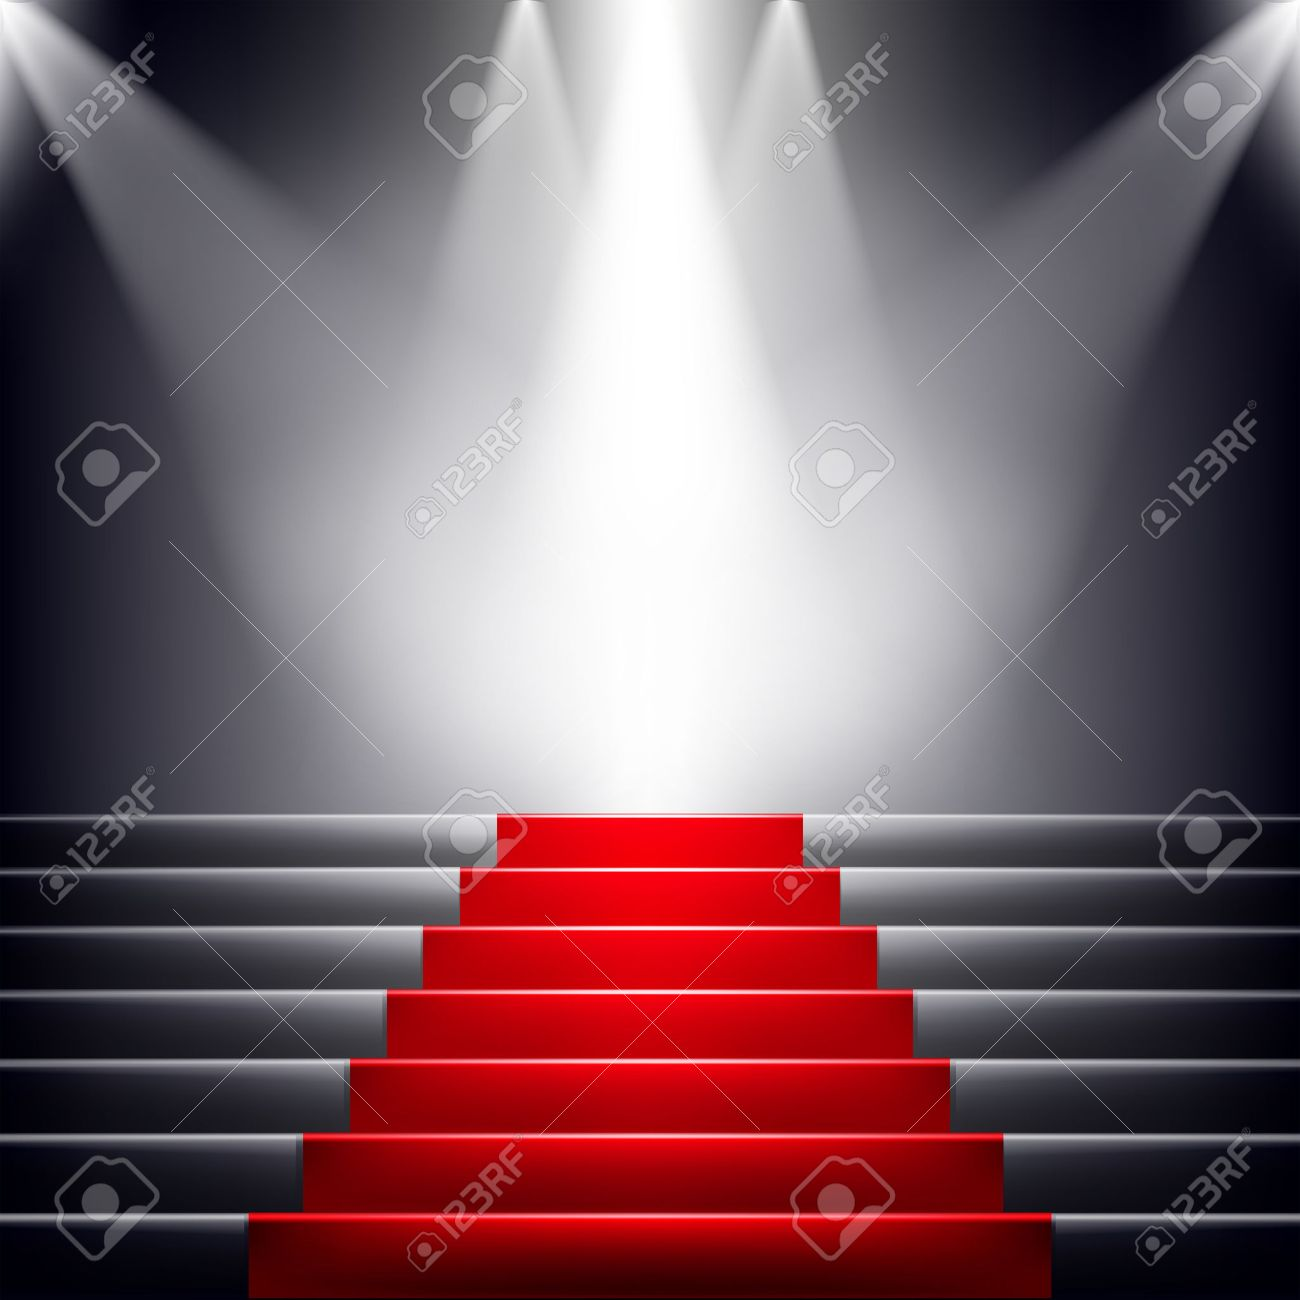 10,553 Red Carpet Stock Vector Illustration And Royalty Free Red ...